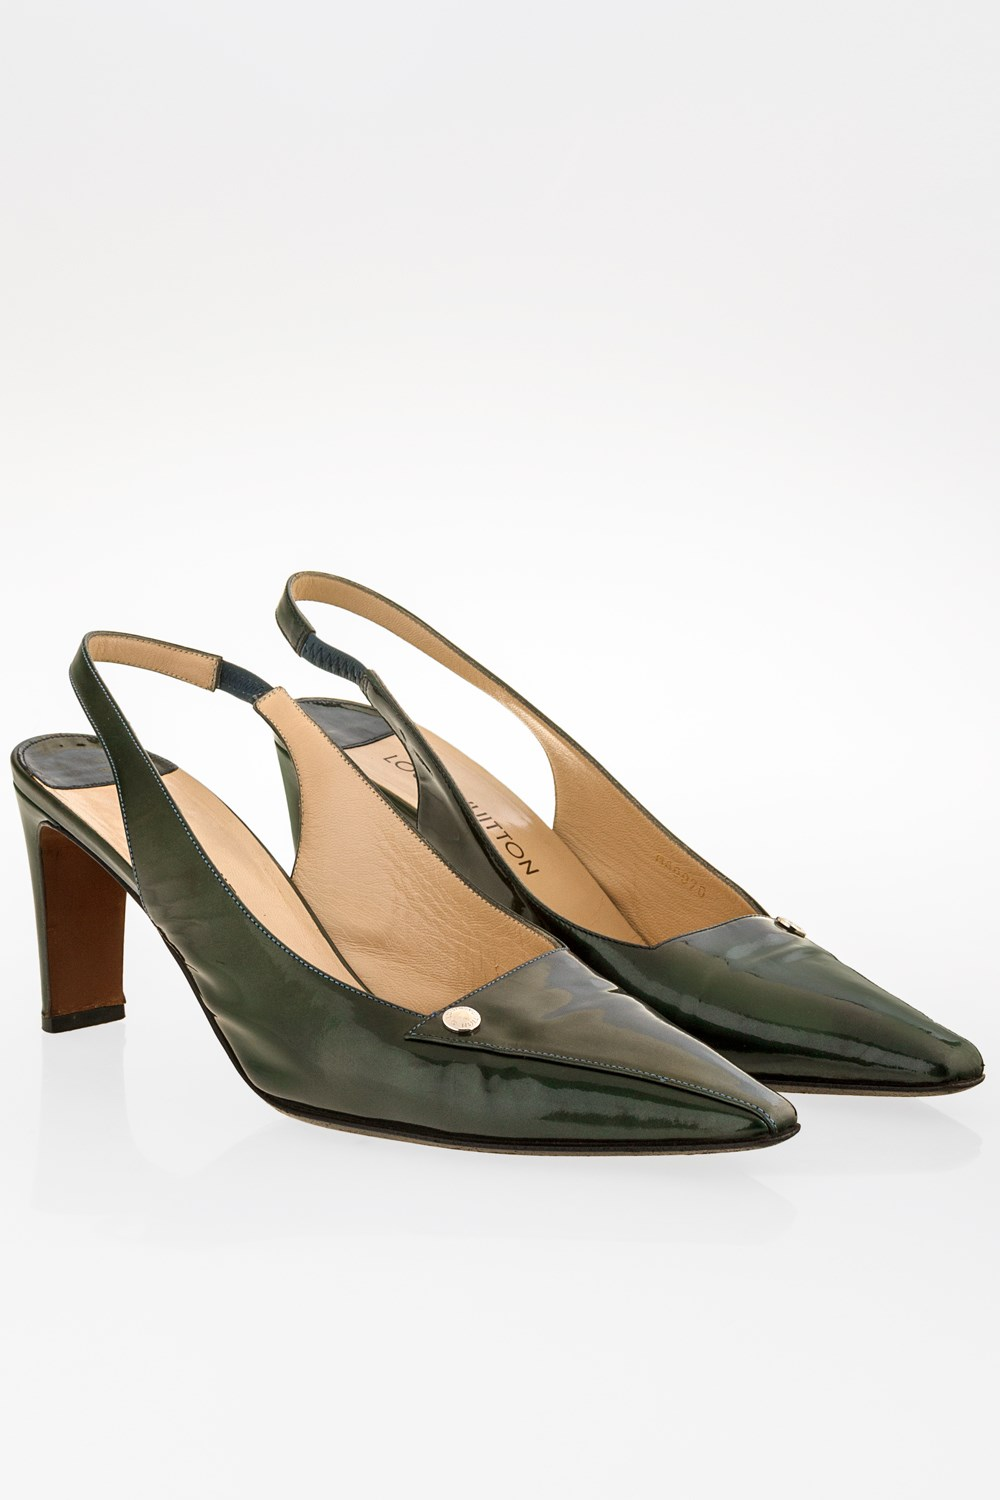 Forest Green Patent Leather Slingbacks   Size  40 - Fit  39 ...